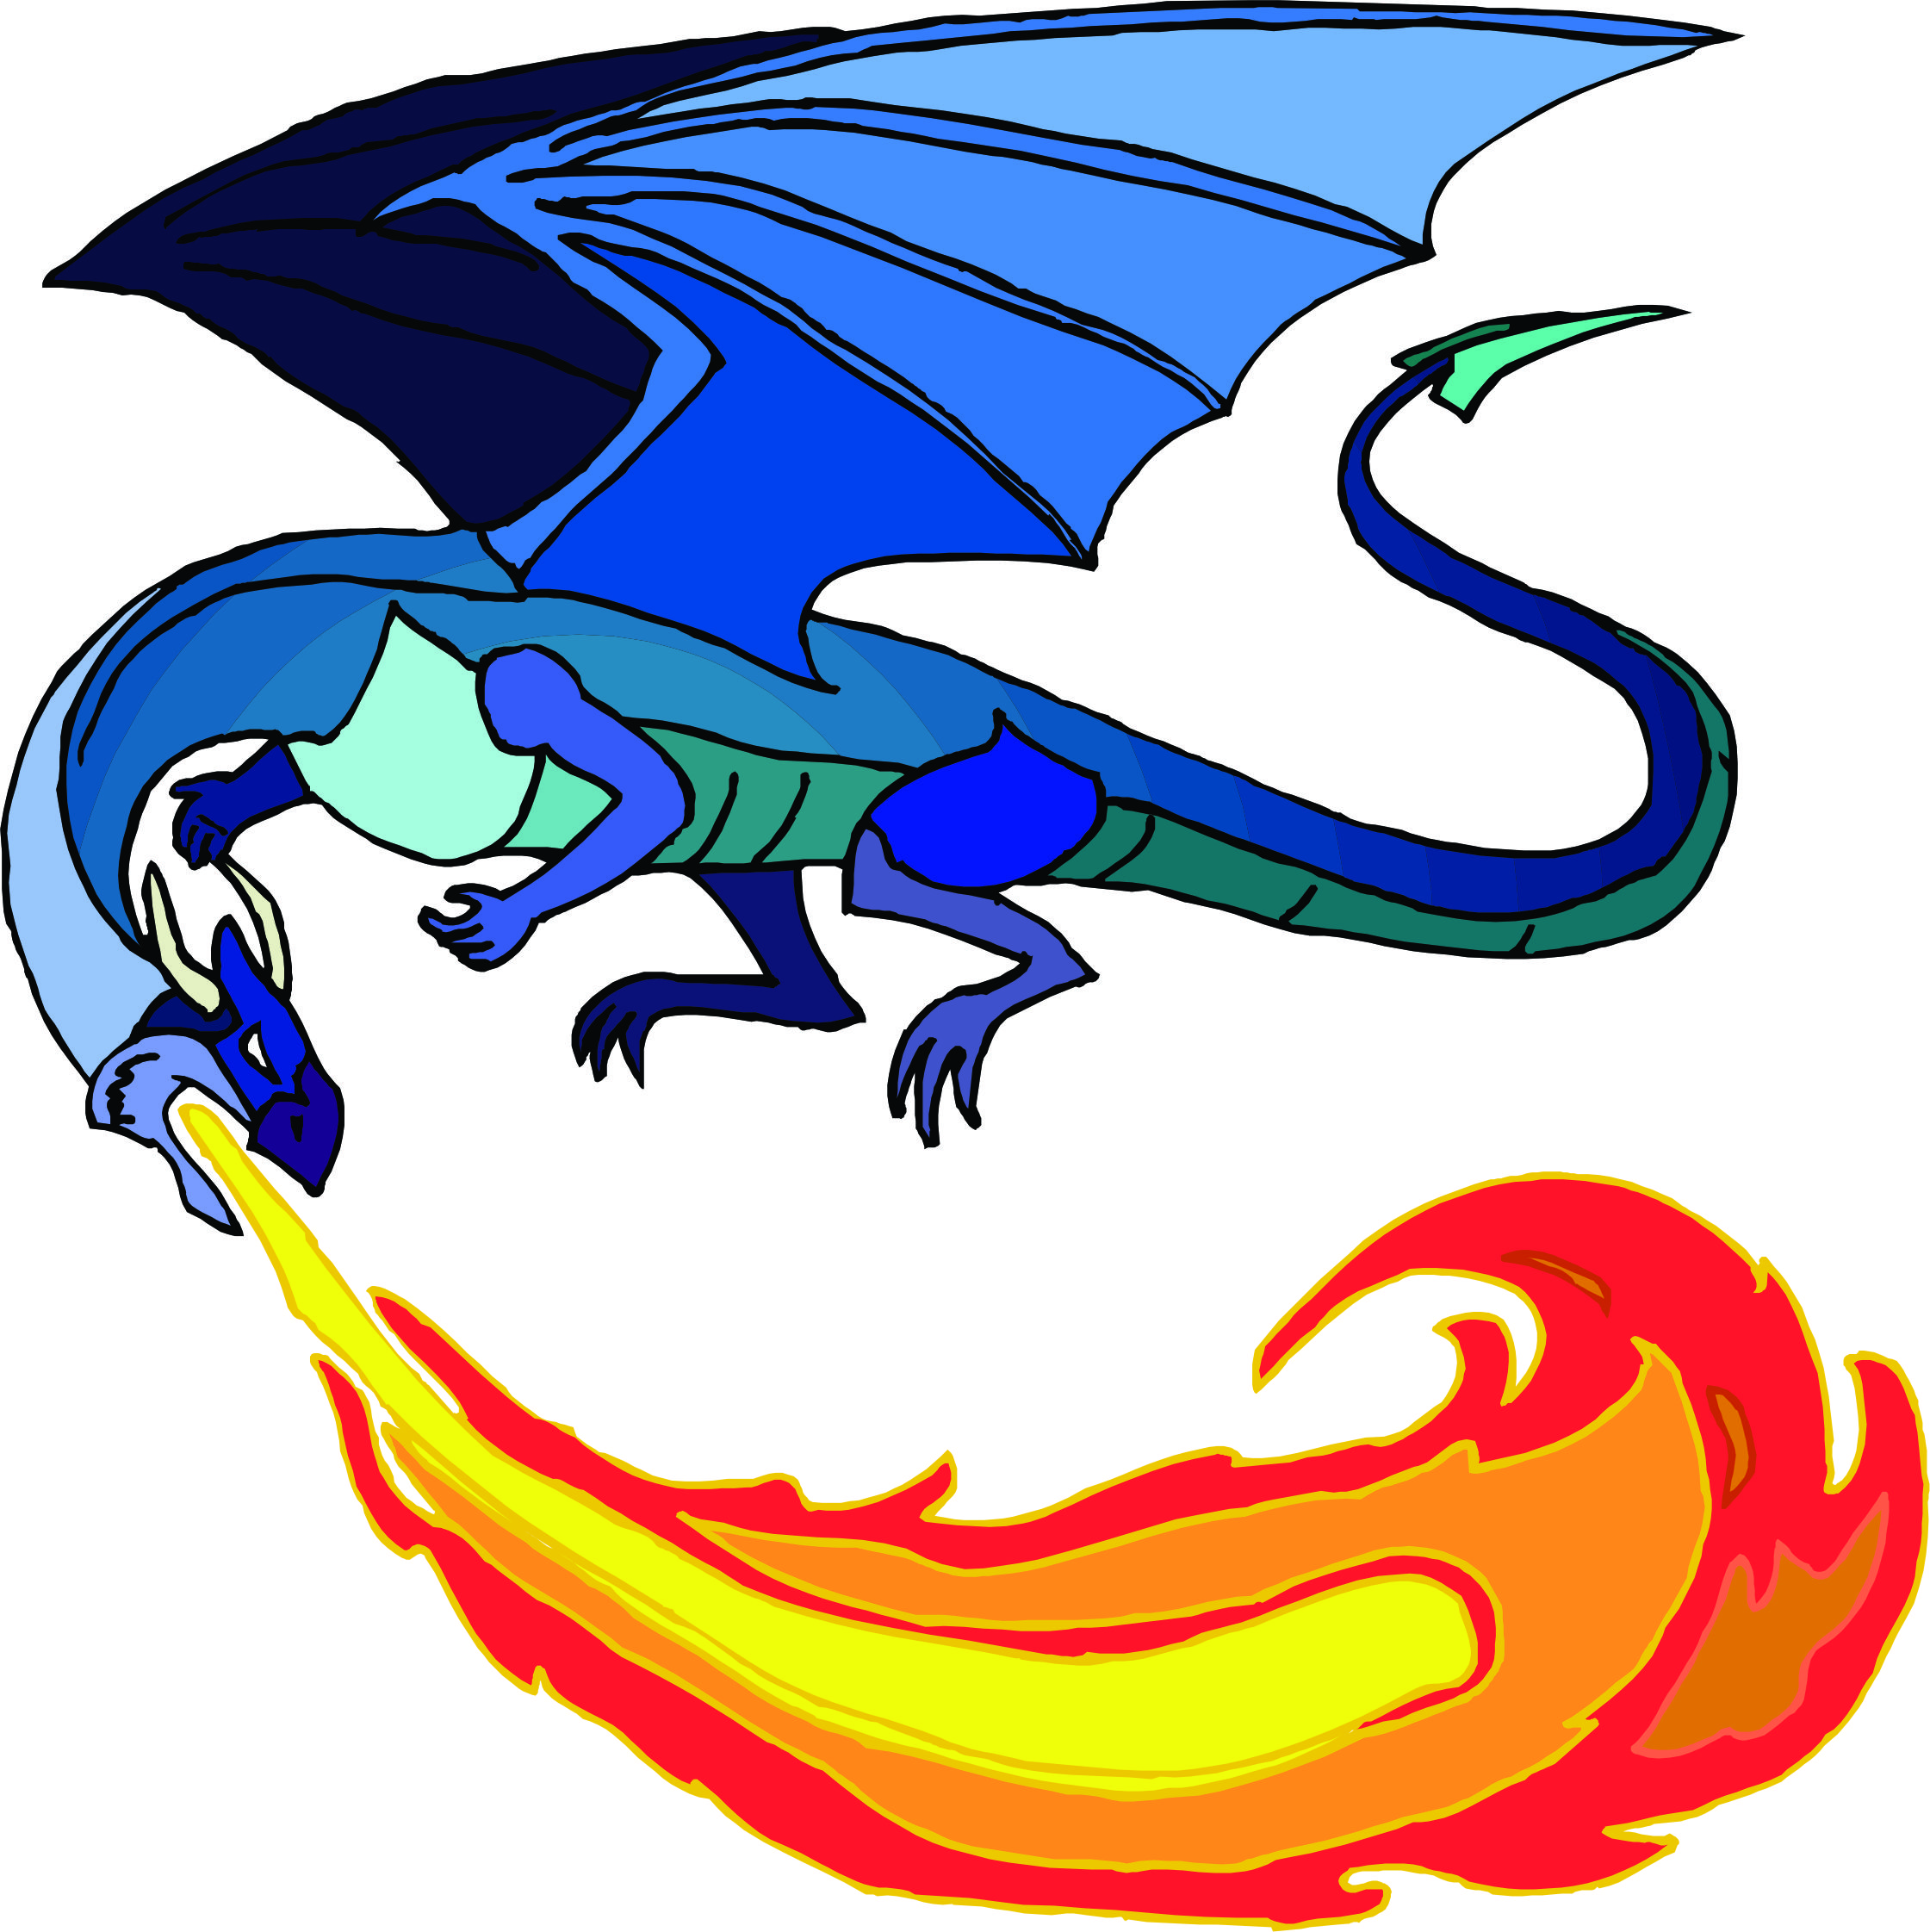 clipart library download Breath clipart fire. Free cartoon dragon breathing